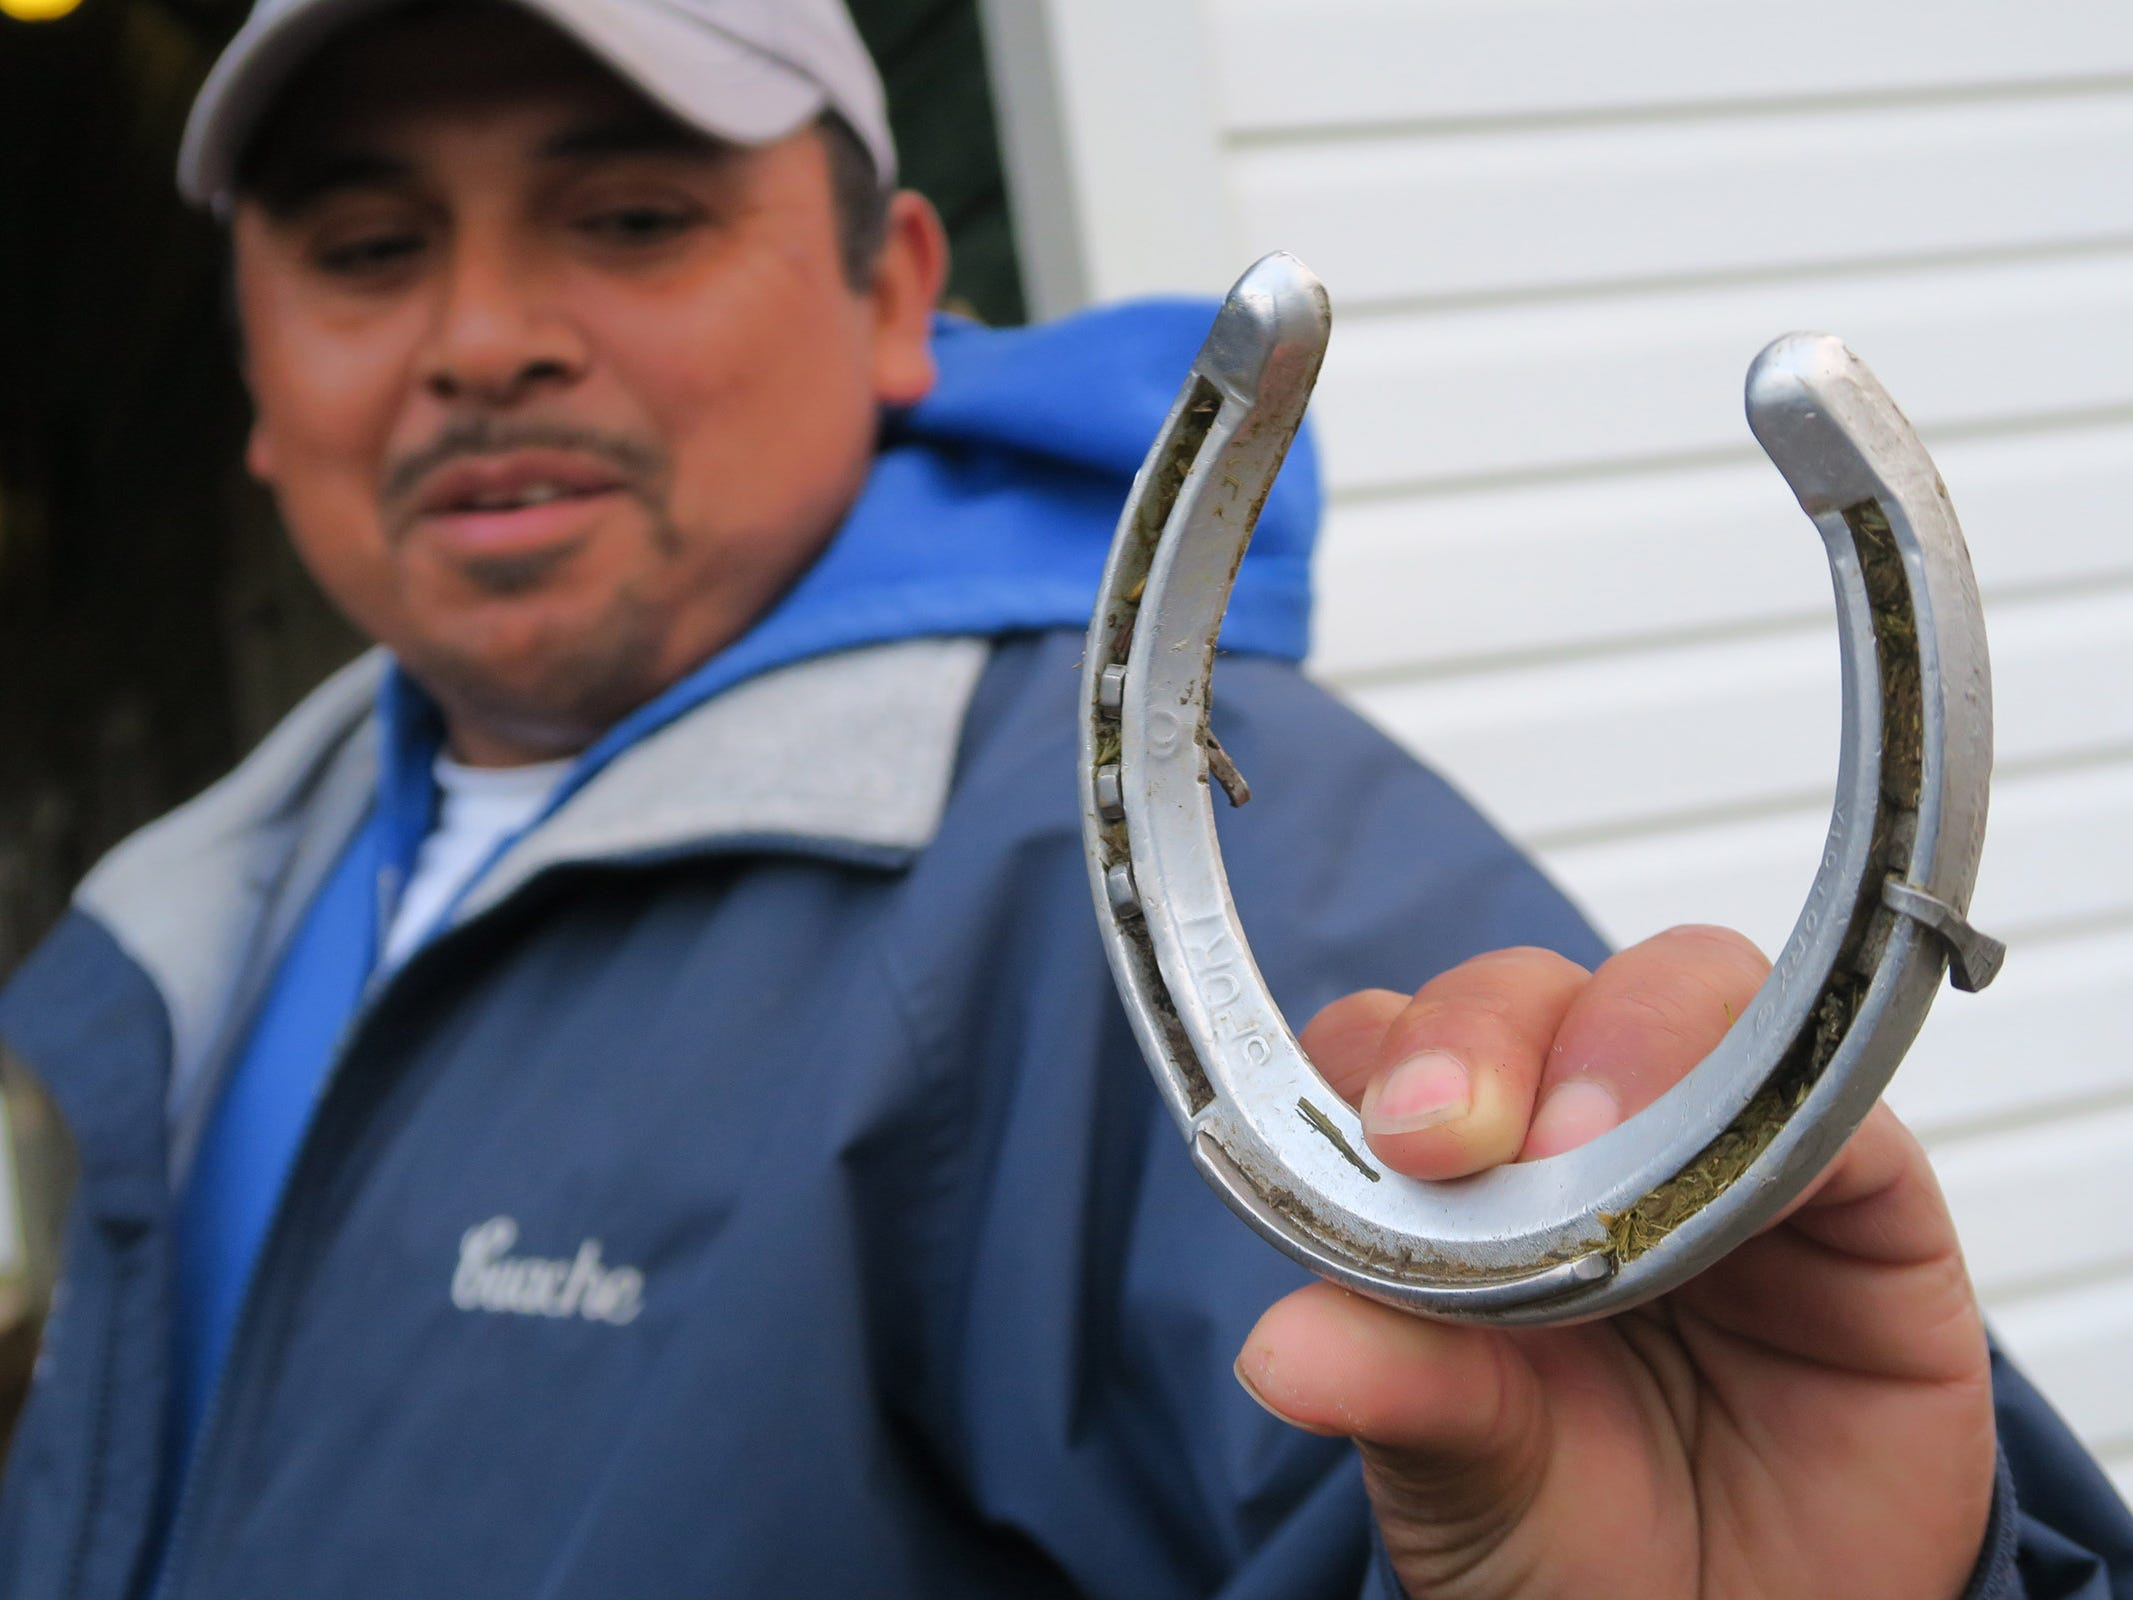 """Jose """"Guache"""" Hernandez holds a shoe from Maximum Security, disaqualified after winning the Kentucky Derby on Saturday, that came loose during his trip to Monmouth Park early Tuesday, May 7, 2019."""